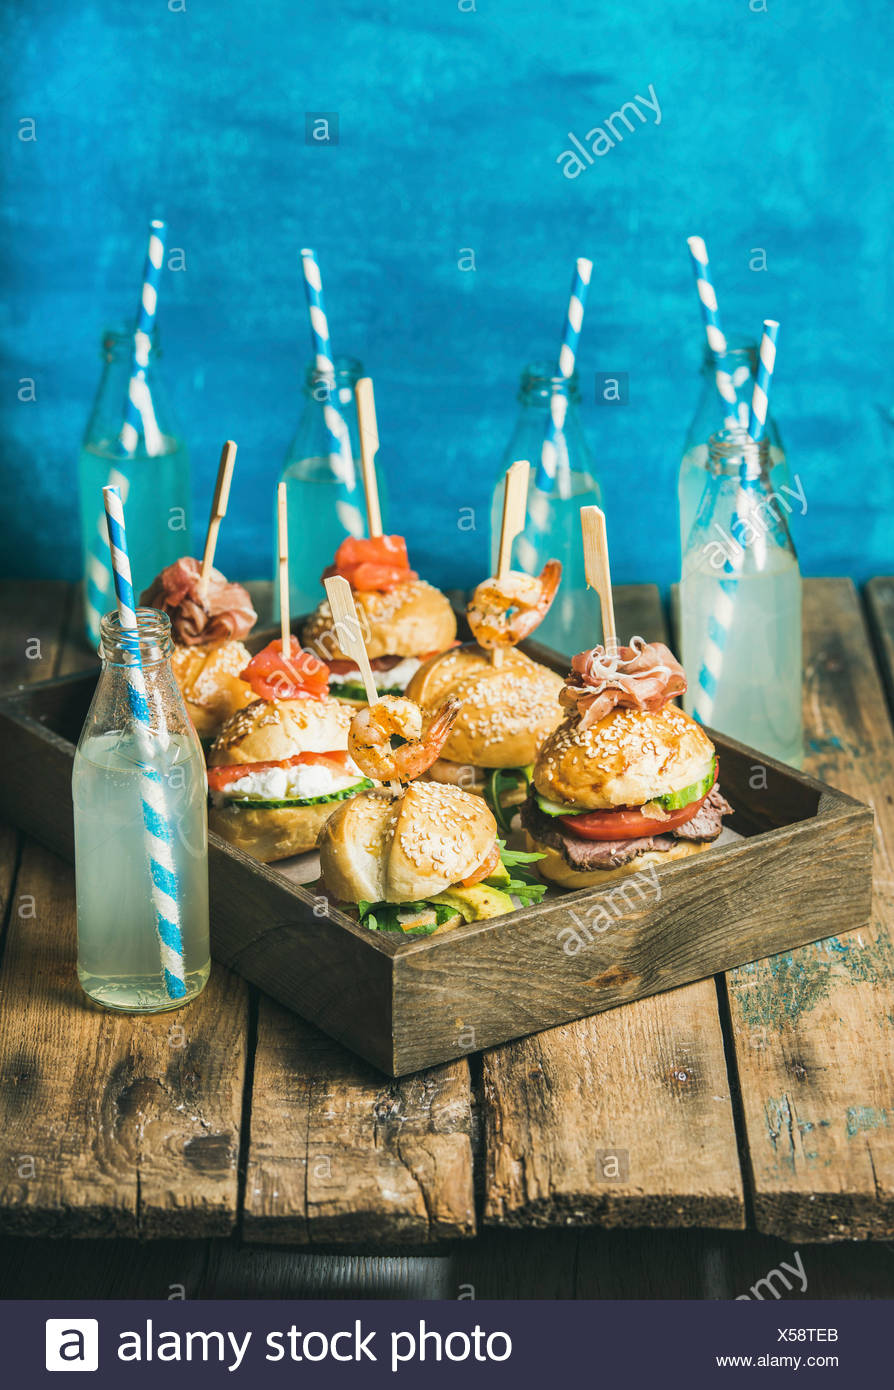 Home party food concept. Different burgers with sticks in wooden tray and lemonade in bottles with straws on rustic shabby table, bright blue painted - Stock Image